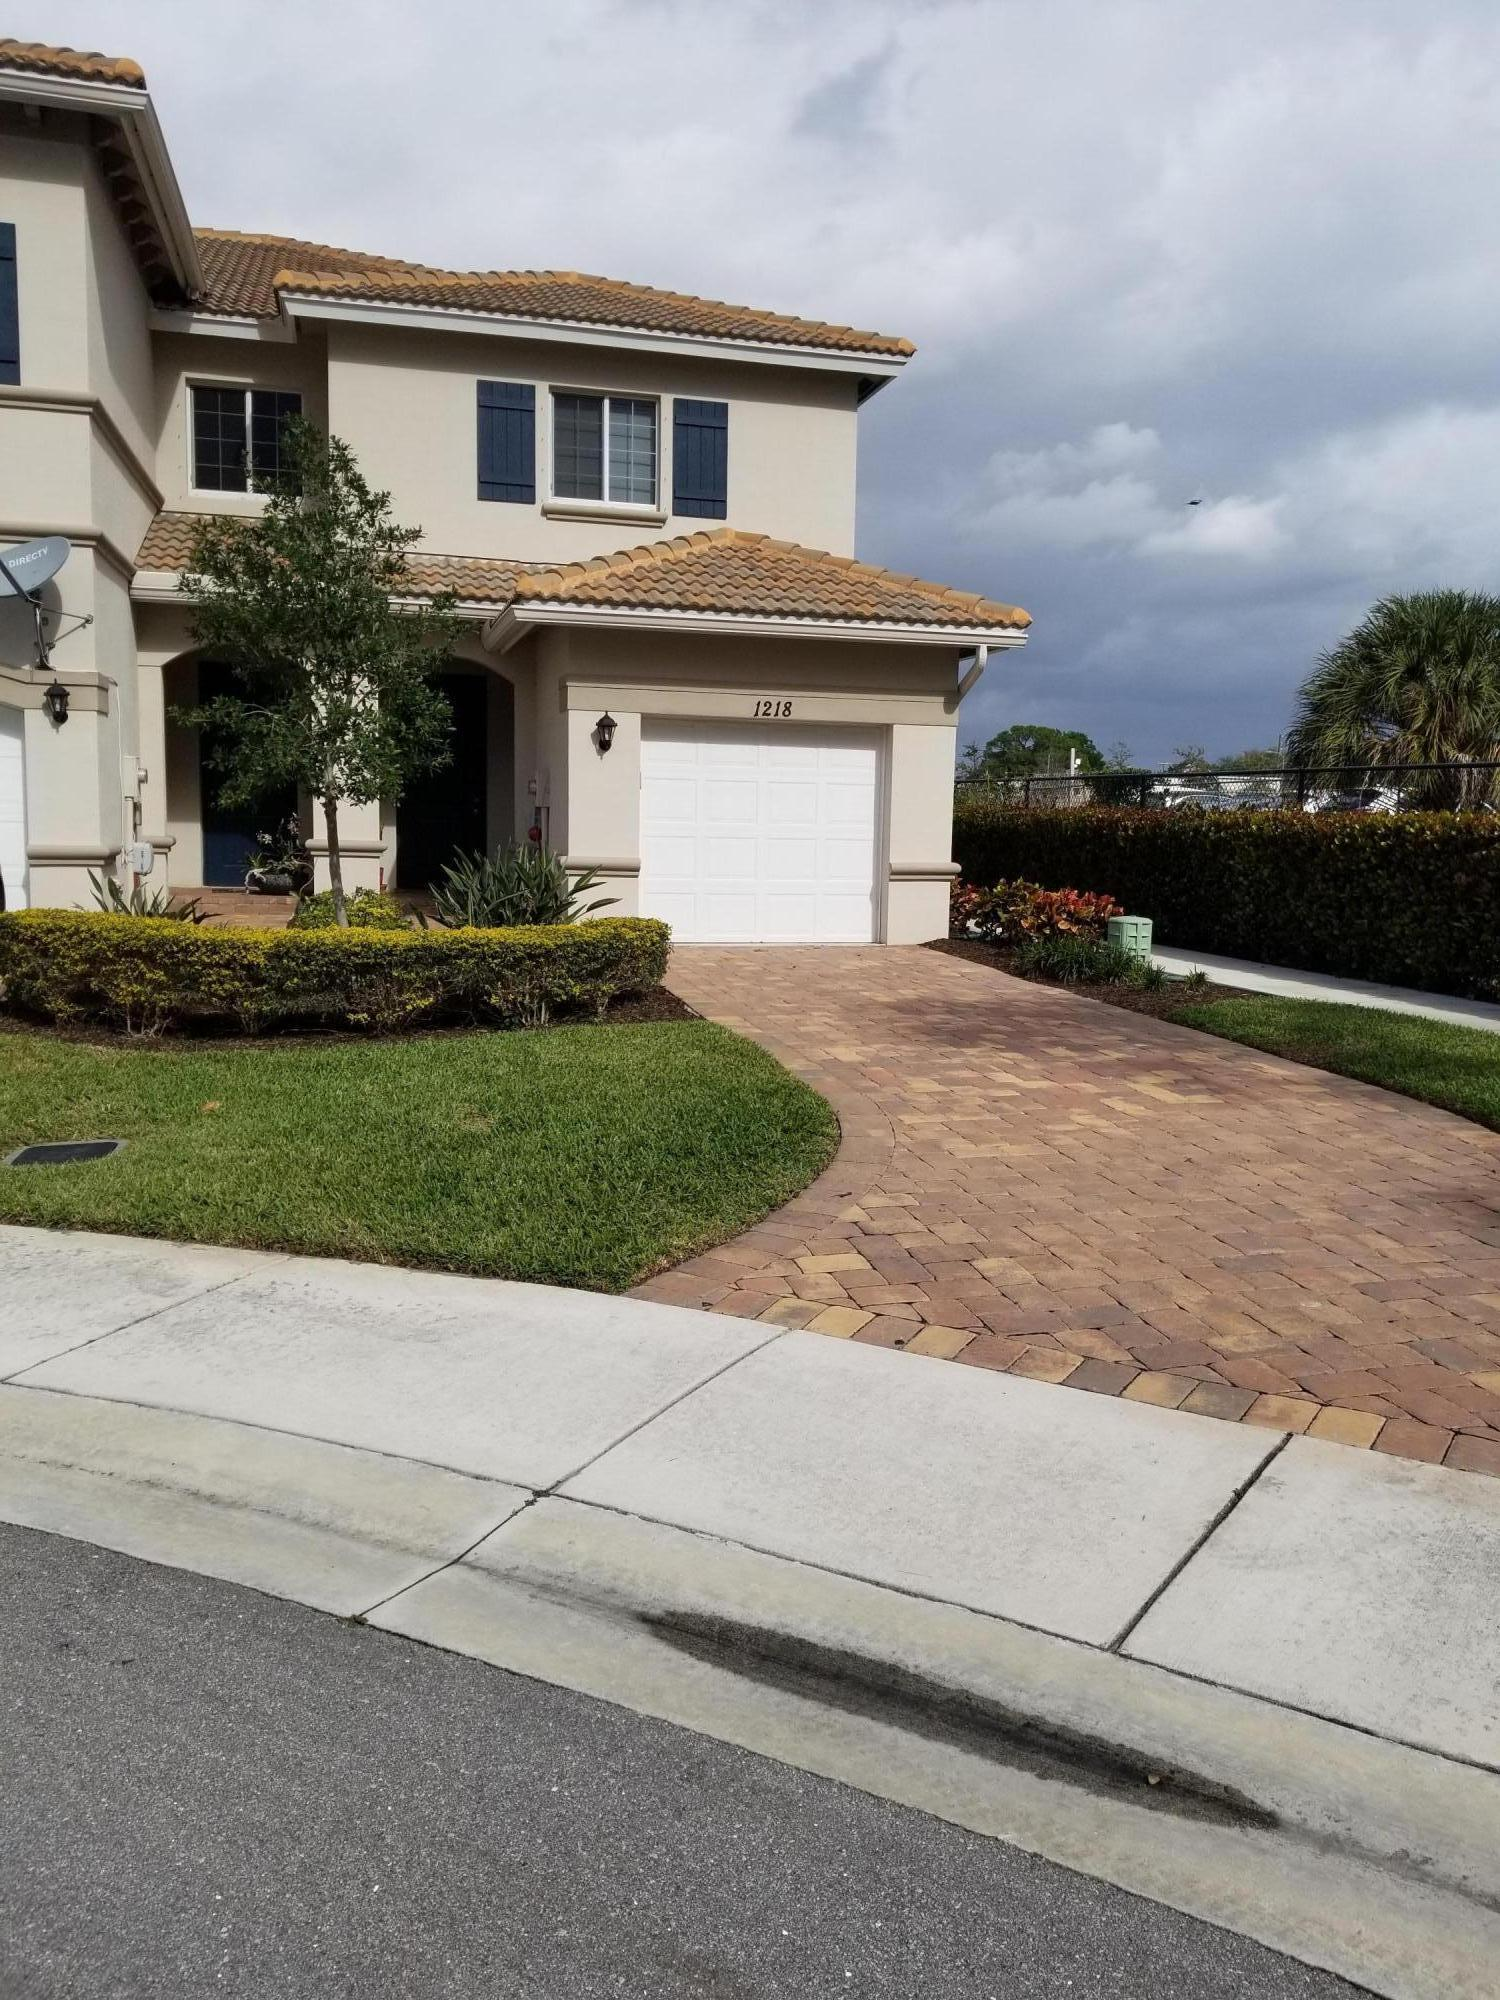 WOW. Upraded to high end finished with wood floors through-out.  Close to I95, shopping, fine dining, fire department and good schools.  Bring your toothbrush  and move right in. Great price! DR HORTON 2017 new construction, gorgeous townhouse tucked away in this quiet gated community conveniently located less than 5 miles from the beach. Move in ready beauty with a 1 car attached garage and zero maintenance for easy living. This spacious floor plan is largest corner lot available in the community with for lots of privacy and easy entertaining and in a cul-de-sac. This lovely townhouse has lots granite counters, stainless steel appliances, wood cabinets, wood-like tile downstairs, carpet upstairs, high end finishes with beautiful lake view. Large master bdrm.